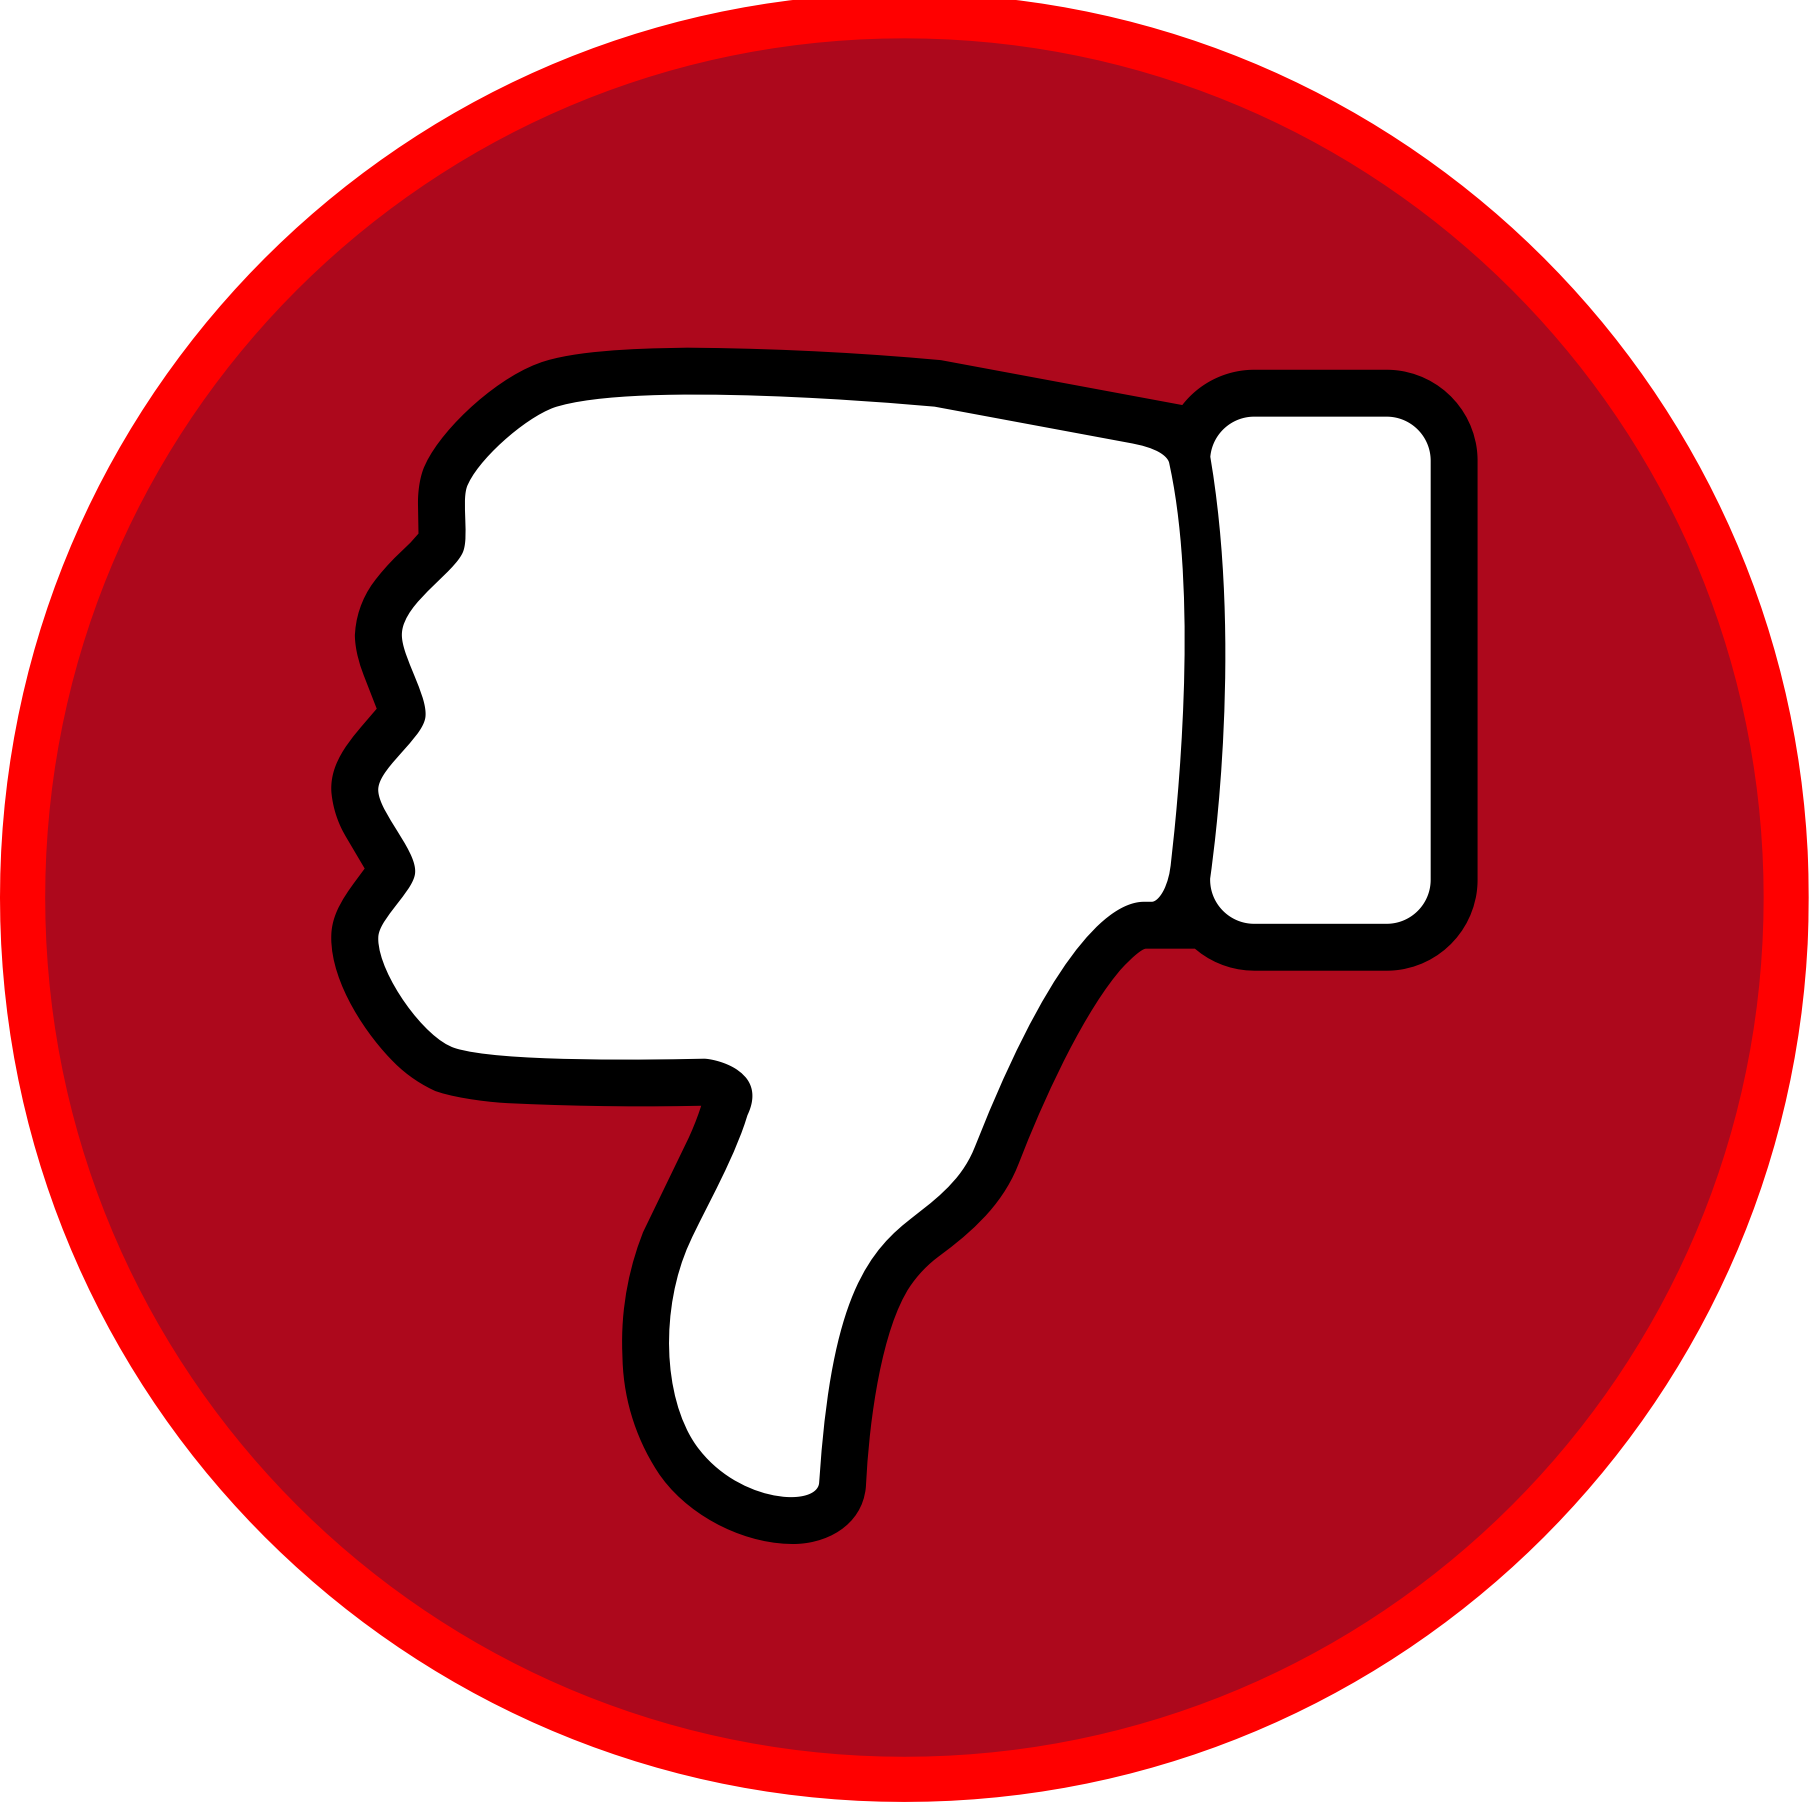 Thumbs Down Clipart & Thumbs Down Clip Art Images.